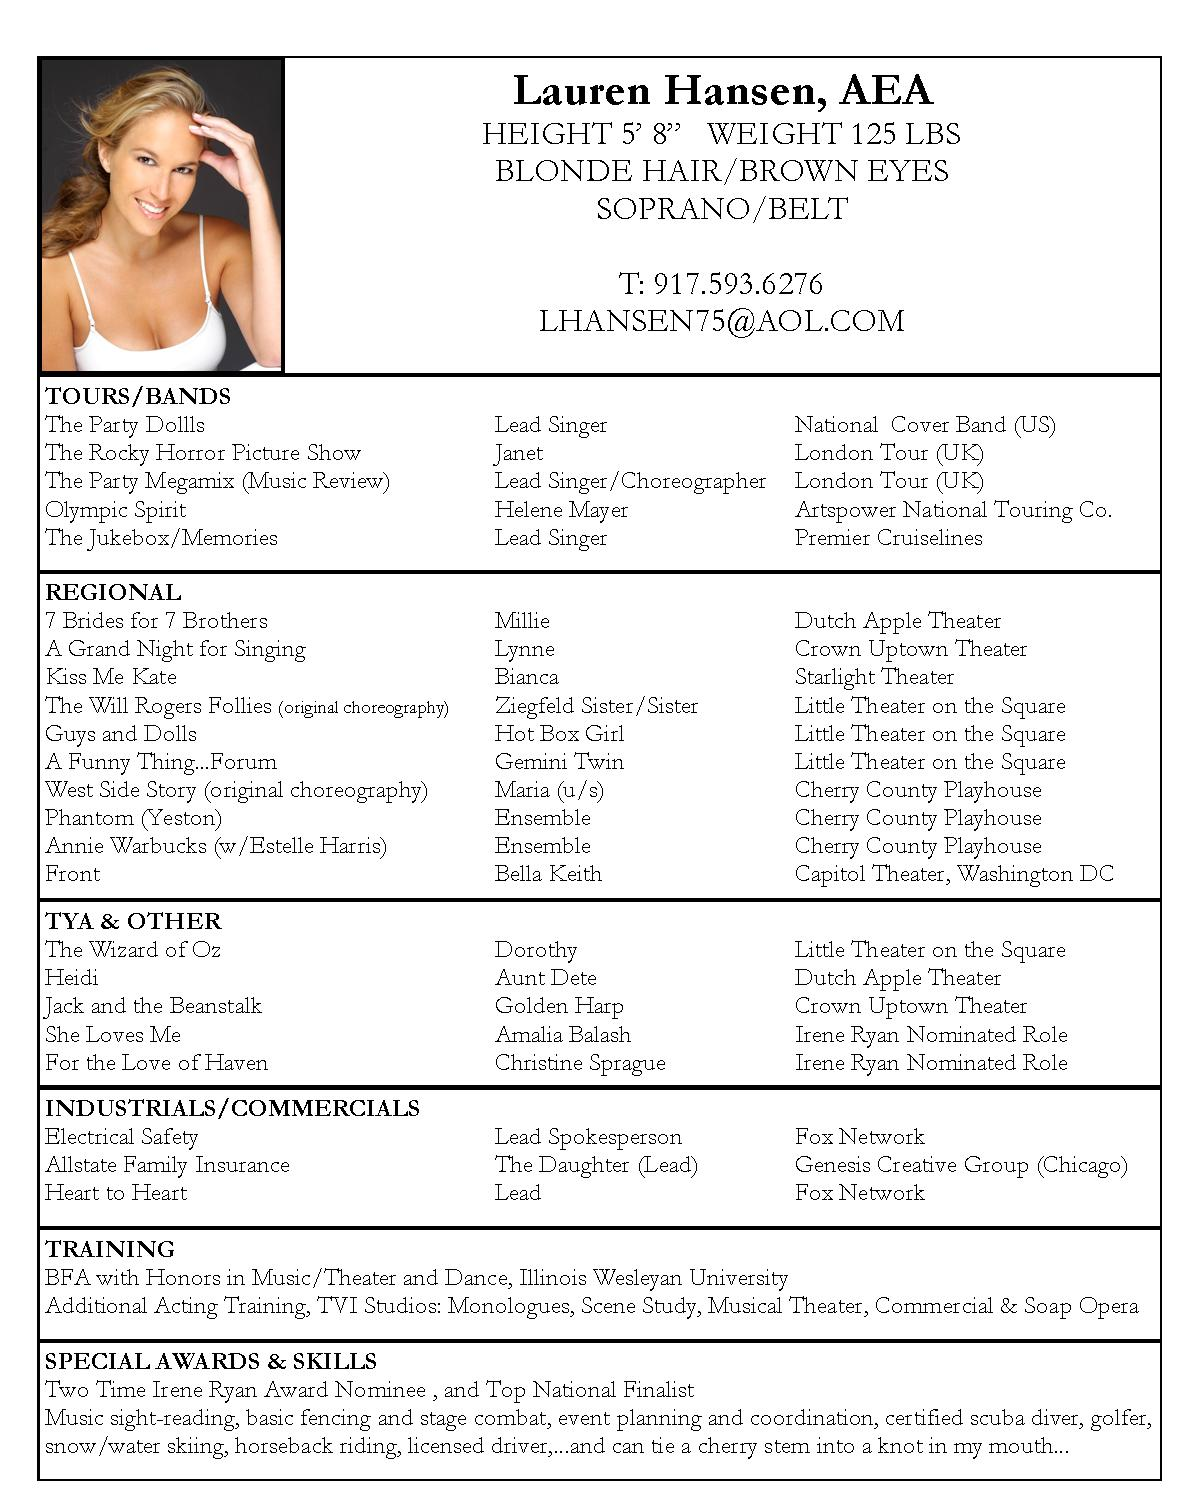 Opposenewapstandardsus  Winsome Resume For Actors Resume For Acting Actors Acting Resume Template  With Gorgeous Acting Cv  Beginner Acting Resume Example For Inexperienced  With Amazing Management Skills For Resume Also Teen Resume Template In Addition Free Resume Template For Word And Basic Resume Samples As Well As What Should Be Included In A Resume Additionally Banking Resume From Kelseymarieco With Opposenewapstandardsus  Gorgeous Resume For Actors Resume For Acting Actors Acting Resume Template  With Amazing Acting Cv  Beginner Acting Resume Example For Inexperienced  And Winsome Management Skills For Resume Also Teen Resume Template In Addition Free Resume Template For Word From Kelseymarieco